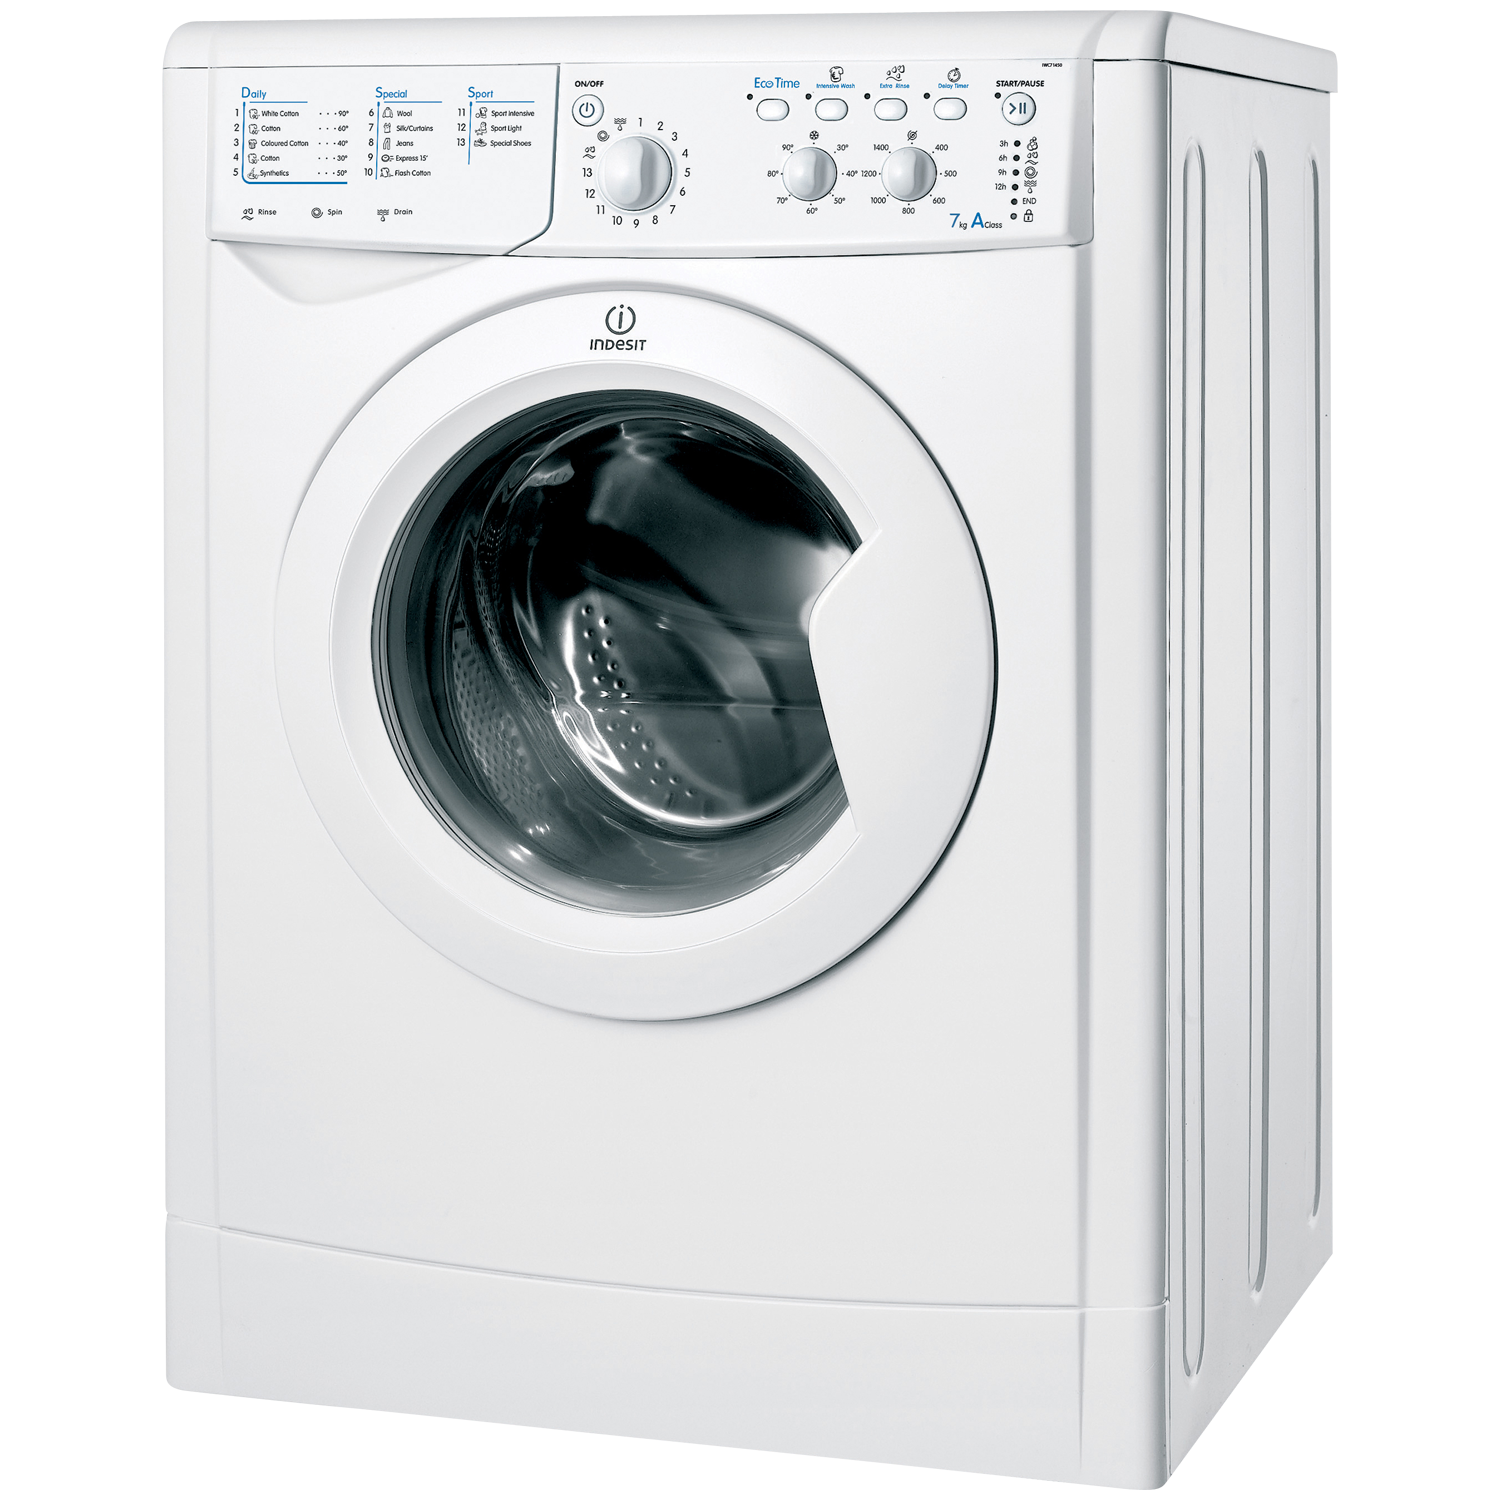 indesit iwc71450 washing machine review compare prices. Black Bedroom Furniture Sets. Home Design Ideas